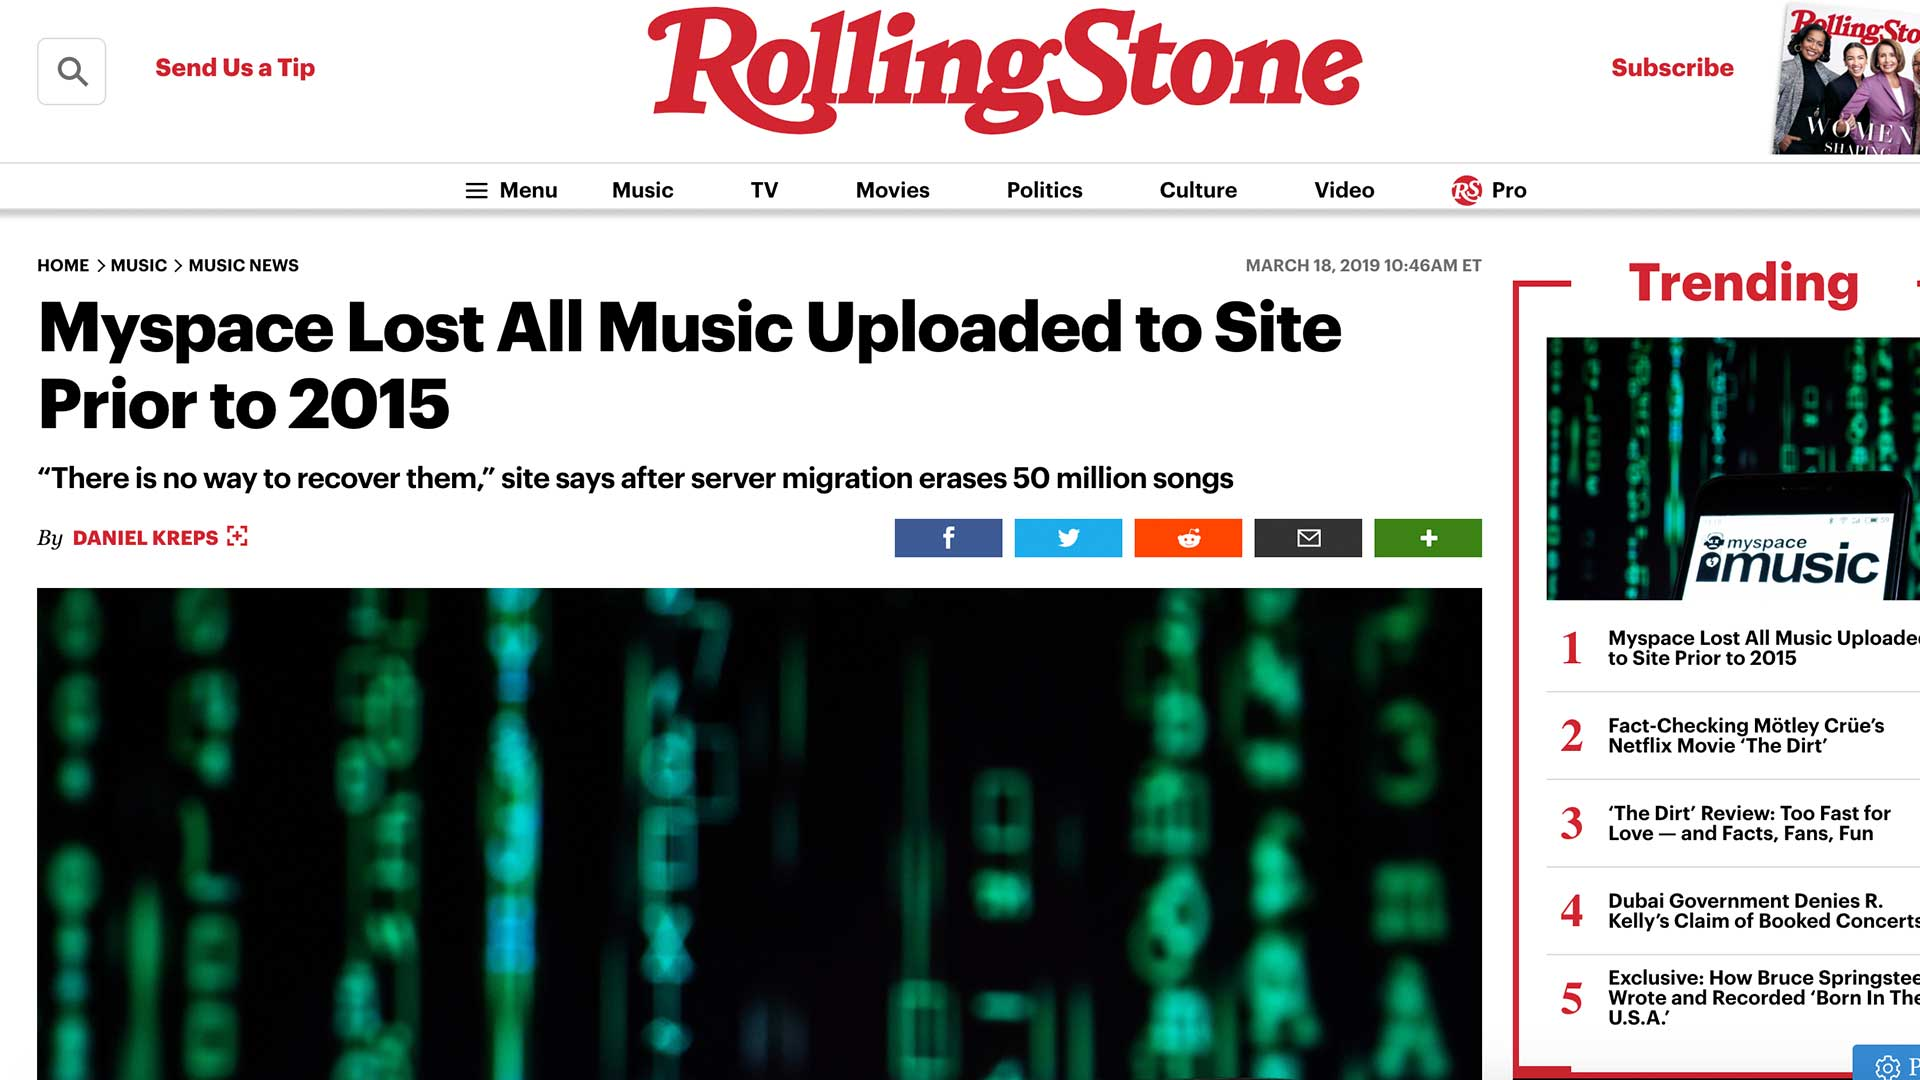 Fairness Rocks News Myspace Lost All Music Uploaded to Site Prior to 2015